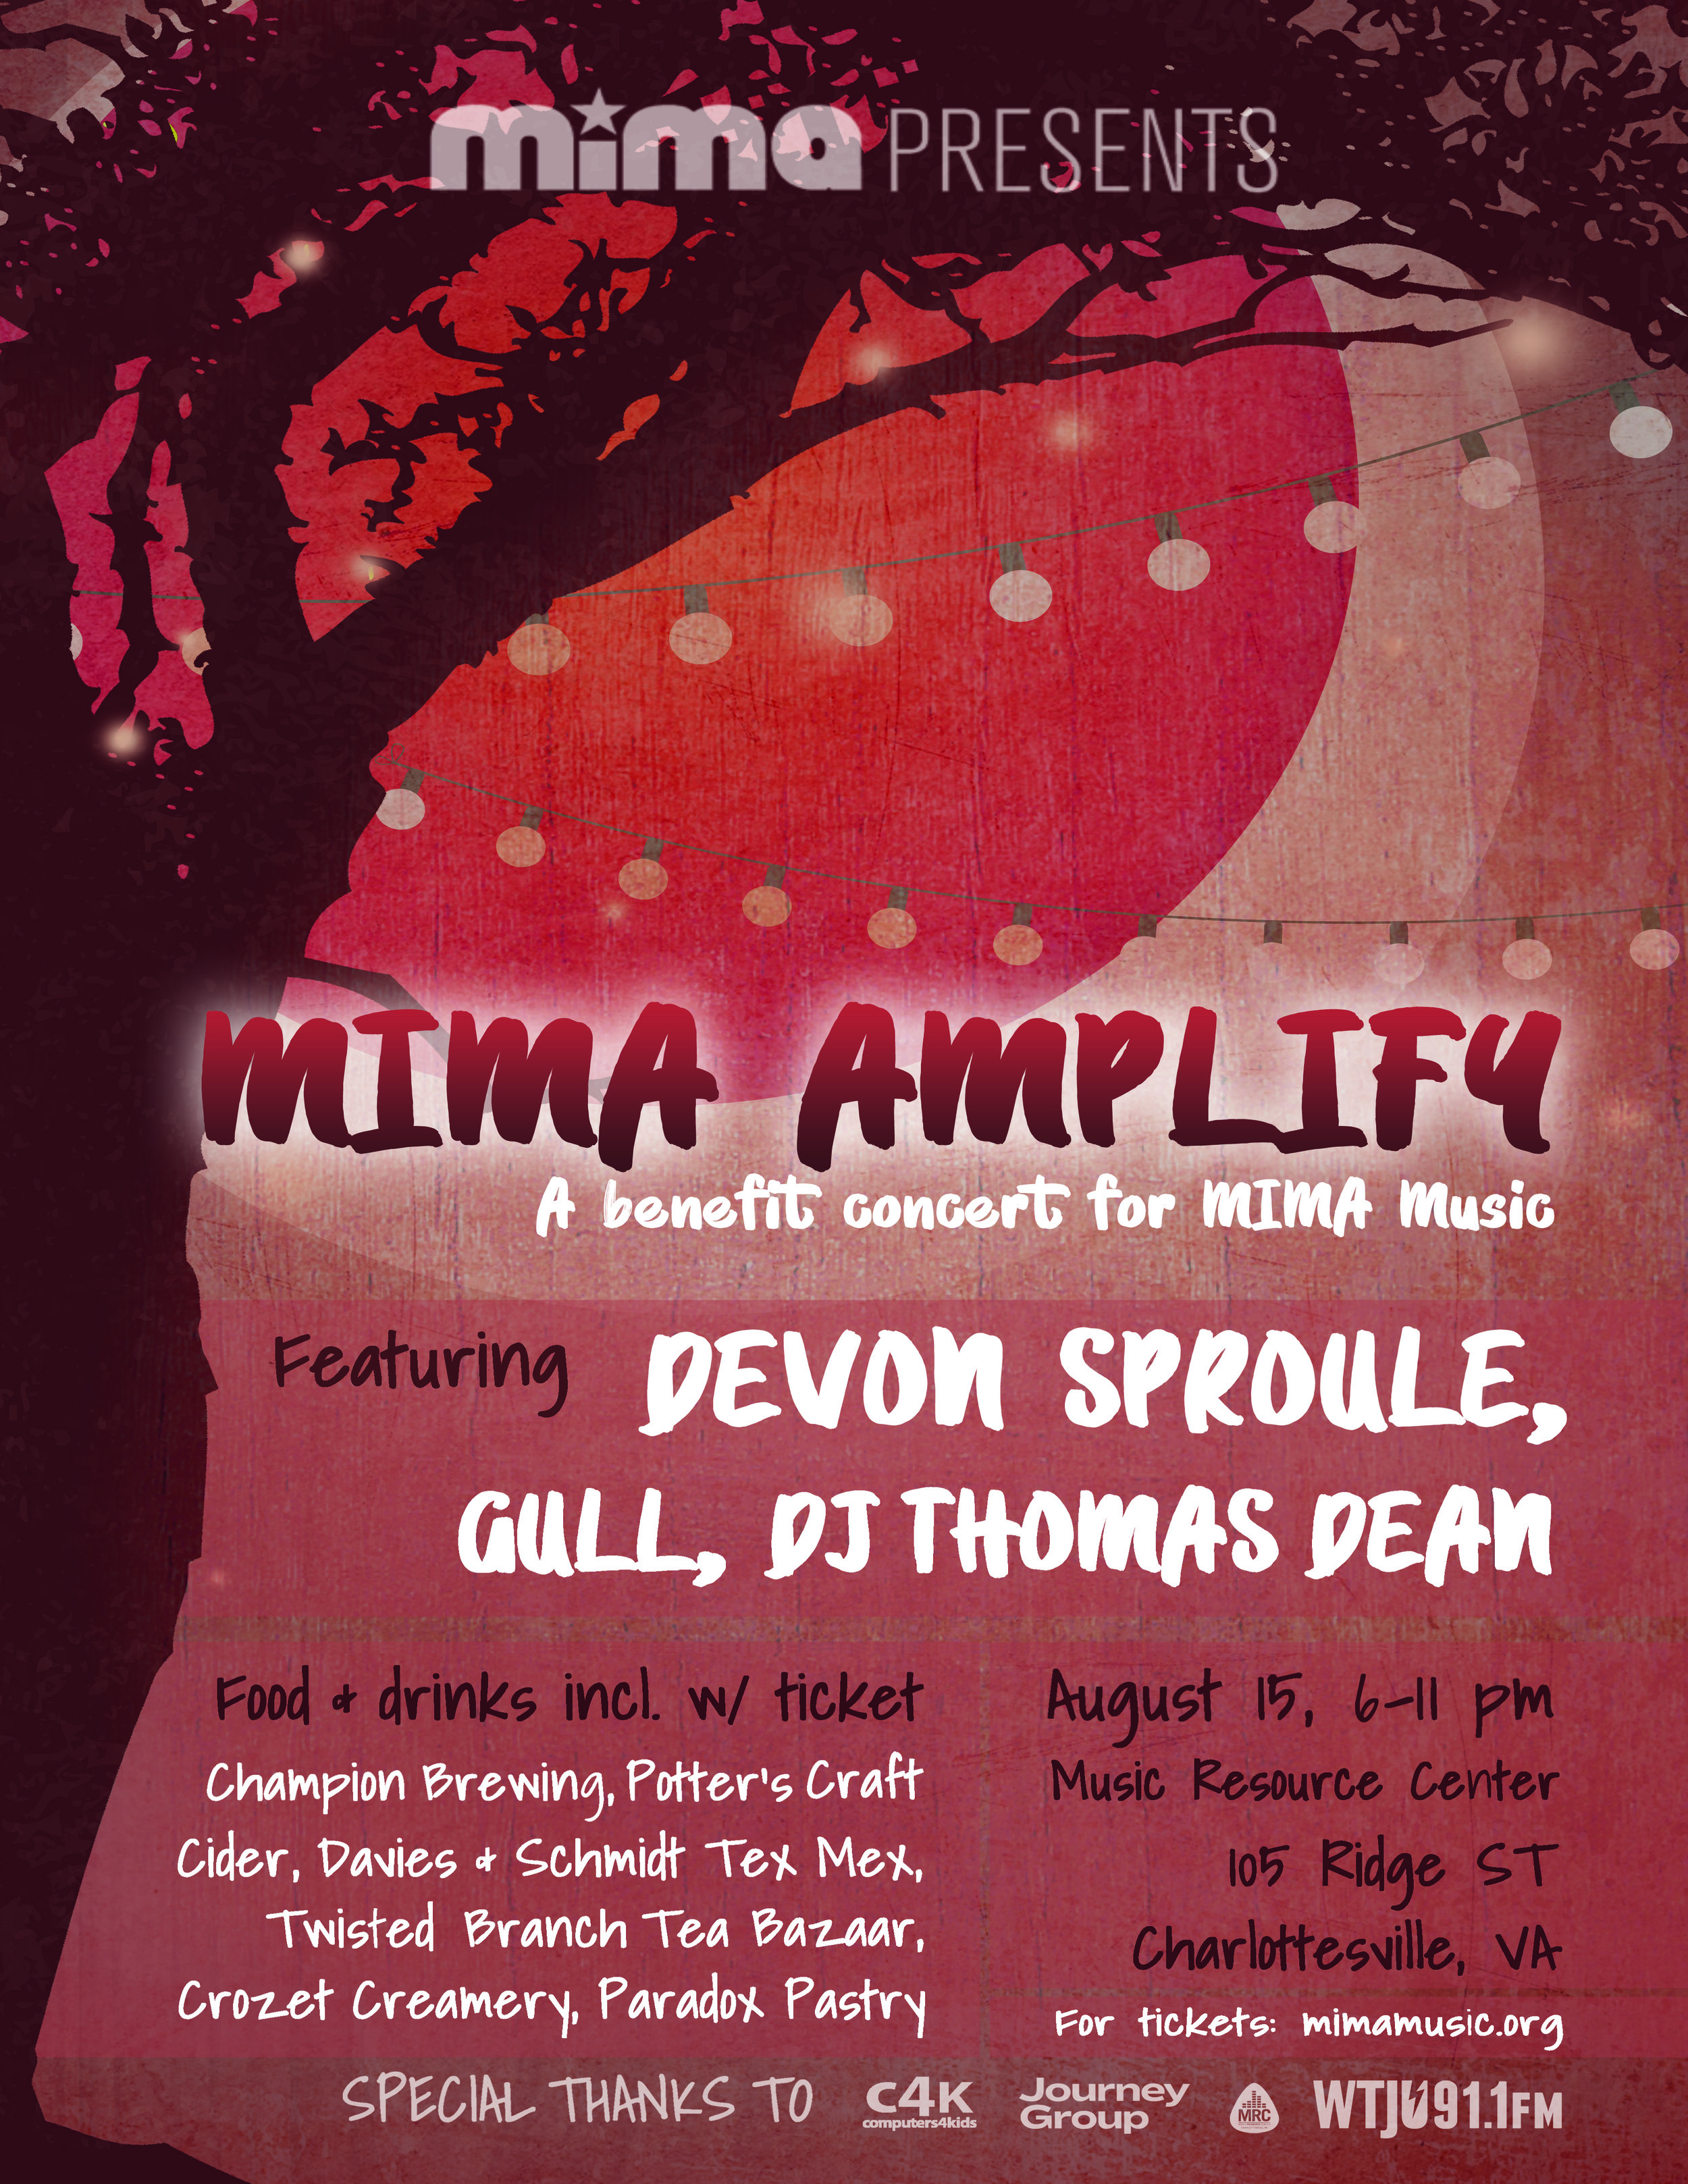 SAVE THE DATE - 8.15.19 - MIMA Presents AMPLIFY, 6-11pm @ Music Resource Center, featuring live sets by Devon Sproule, Gull, DJ sets by Thomas Dean, and visual projections by Computers4Kids! Drinks by Potter's Craft Cider and Champion Brewing Company! Food by Davies & Schmidt Tex Mex, Twisted Branch Tea Bazaar, Crozet Creamery and Paradox Pastry! Families welcome (kids free)! Thanks to our sponsors Journey Group and WTJU and thank YOU for supporting music education!